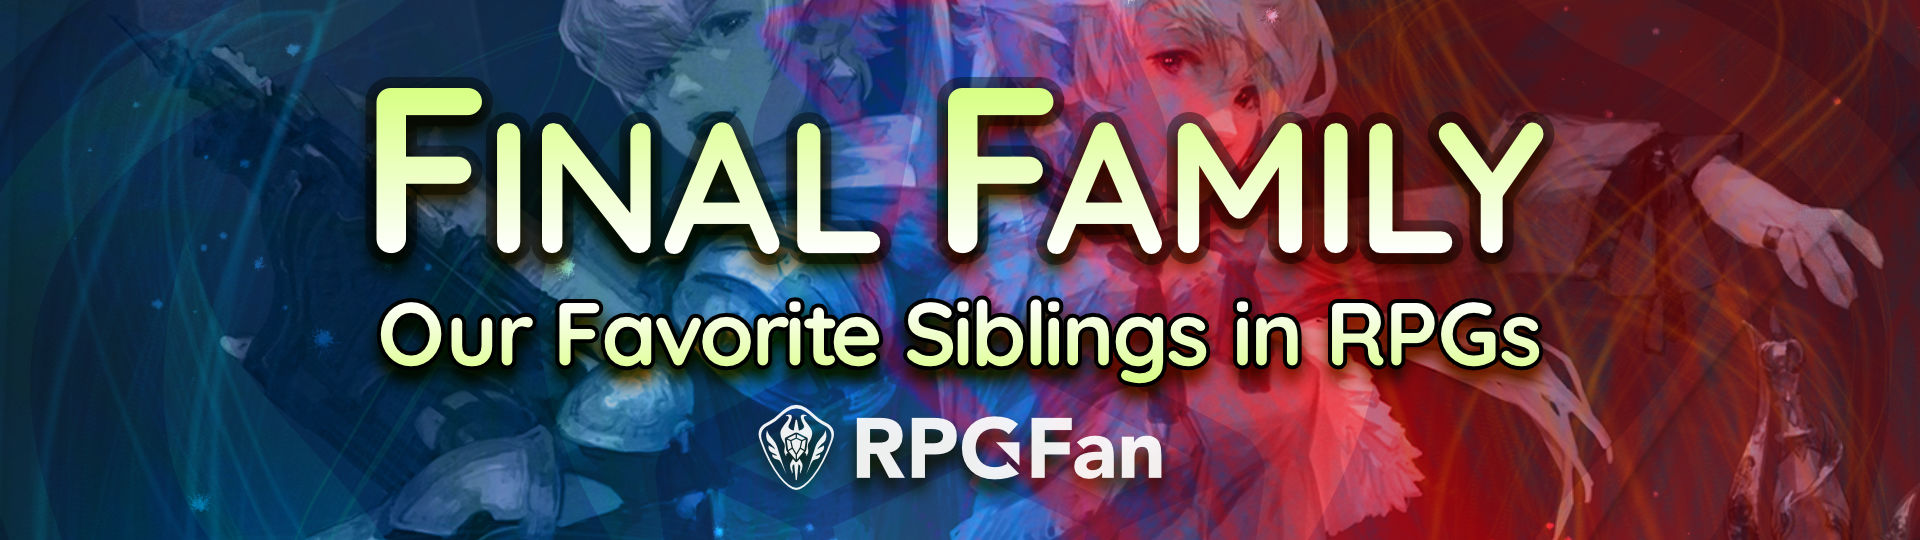 Final Family: Our Favorite Siblings in RPGs Featured